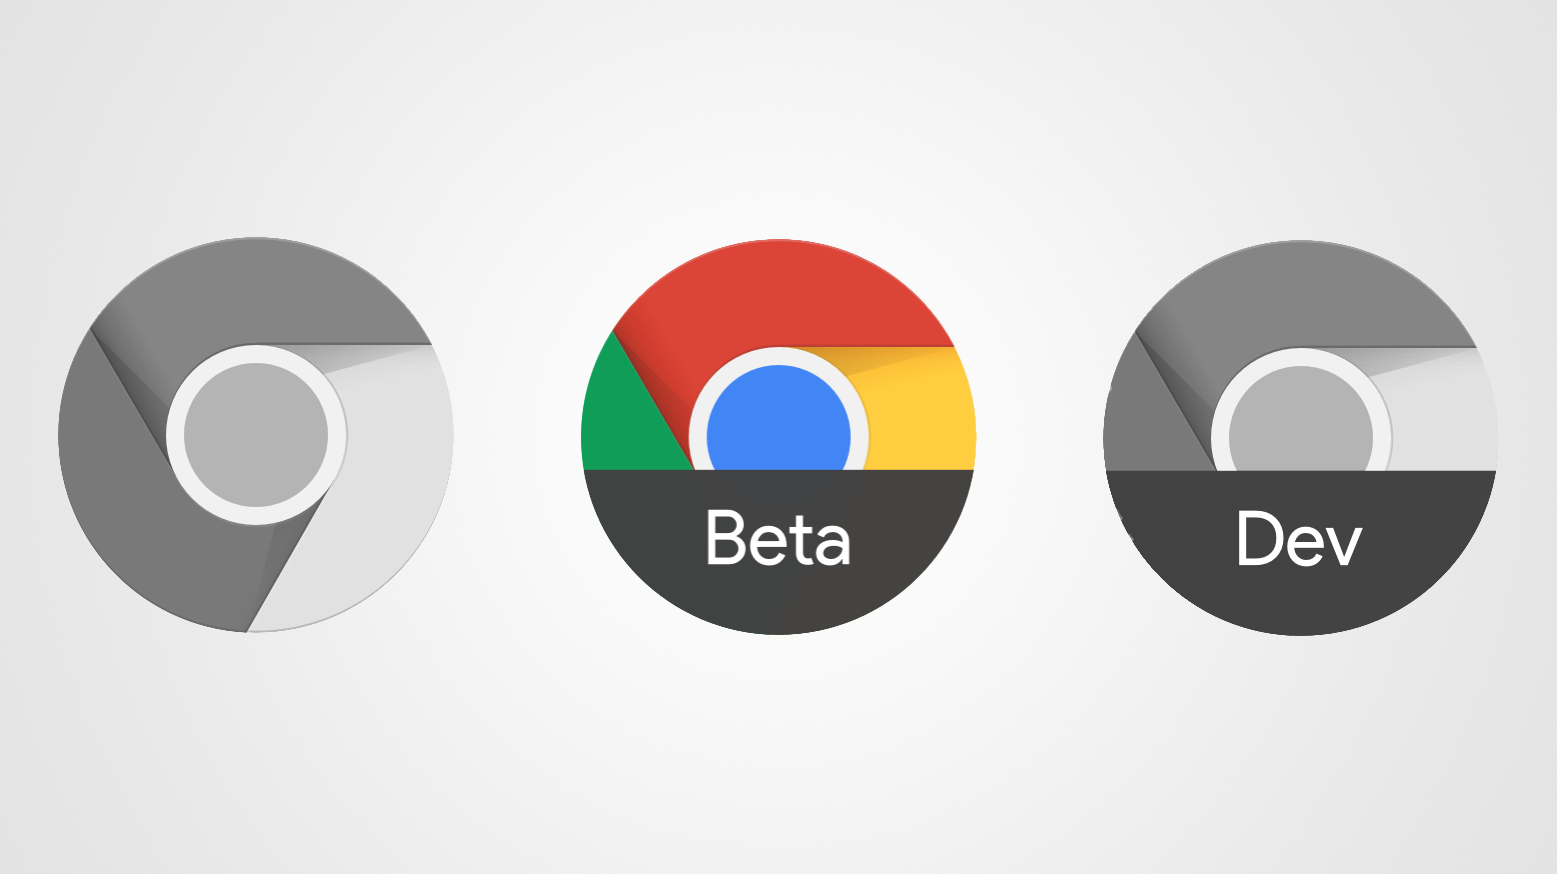 Chrome 90 Beta is rolling out, and you can download it right now